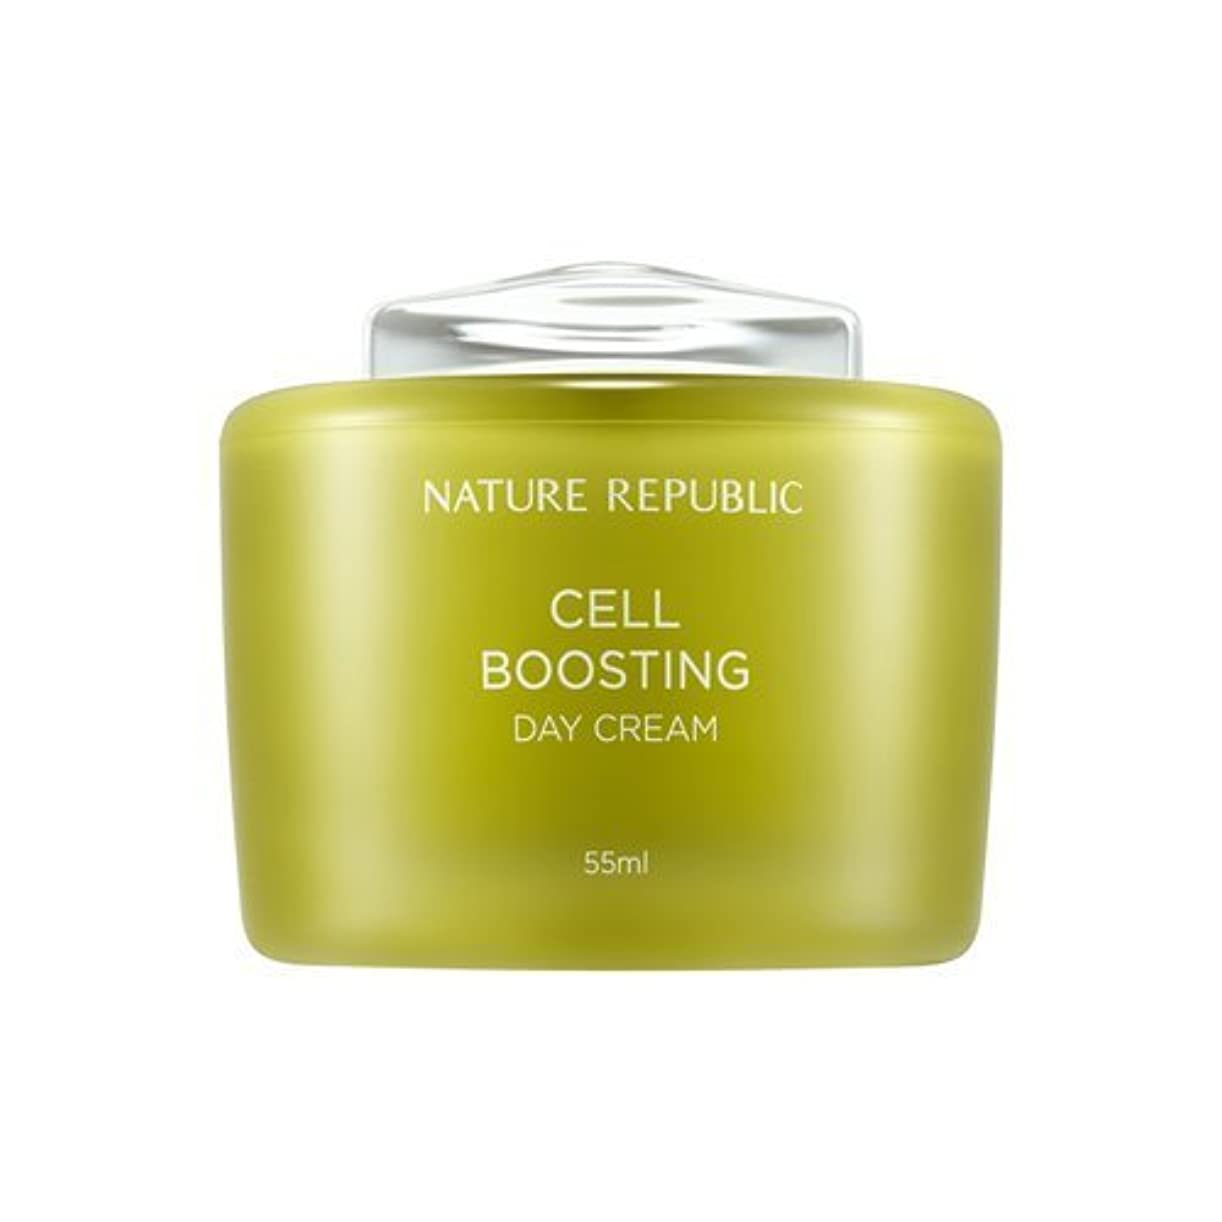 子犬眠っているファンタジーNATUREREPUBLIC Cell boosting Day Cream